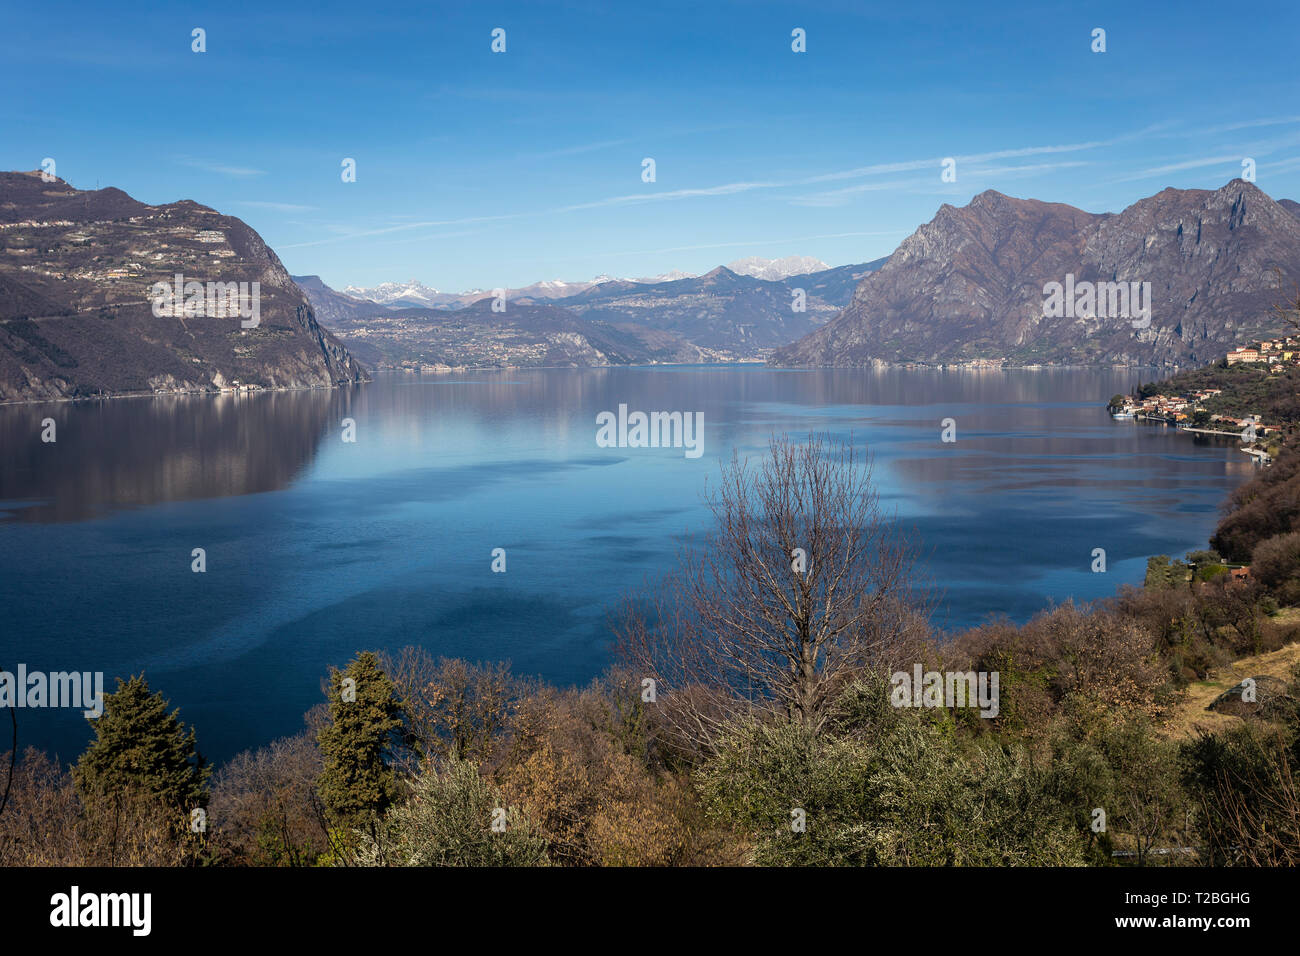 Leke Iseo seen from Monte Isola island, Lombardy, Italy - Stock Image